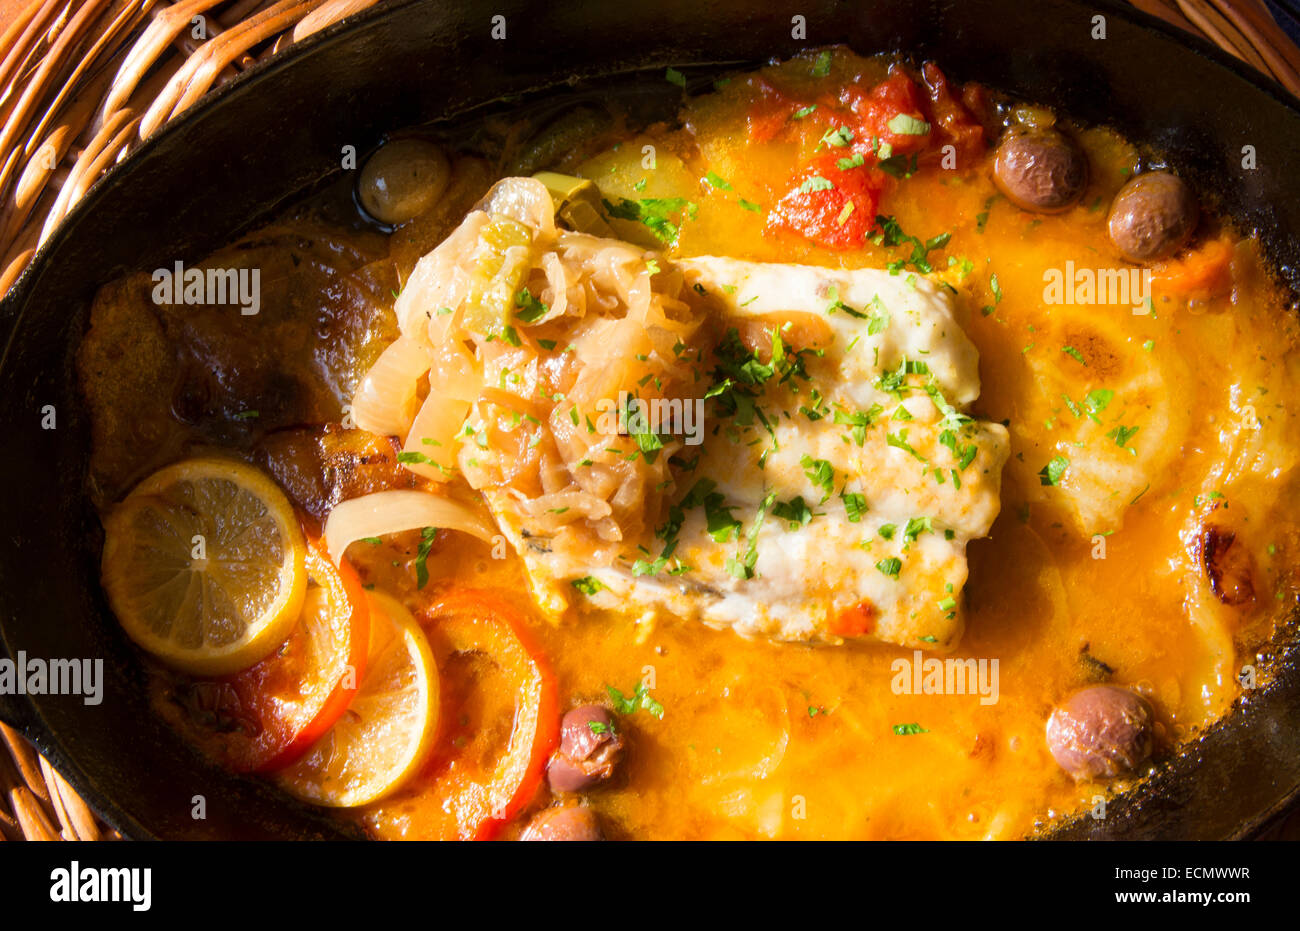 Barcelona Spain food plate of seafood Hale fish with beautiful lighting  in hot dish - Stock Image